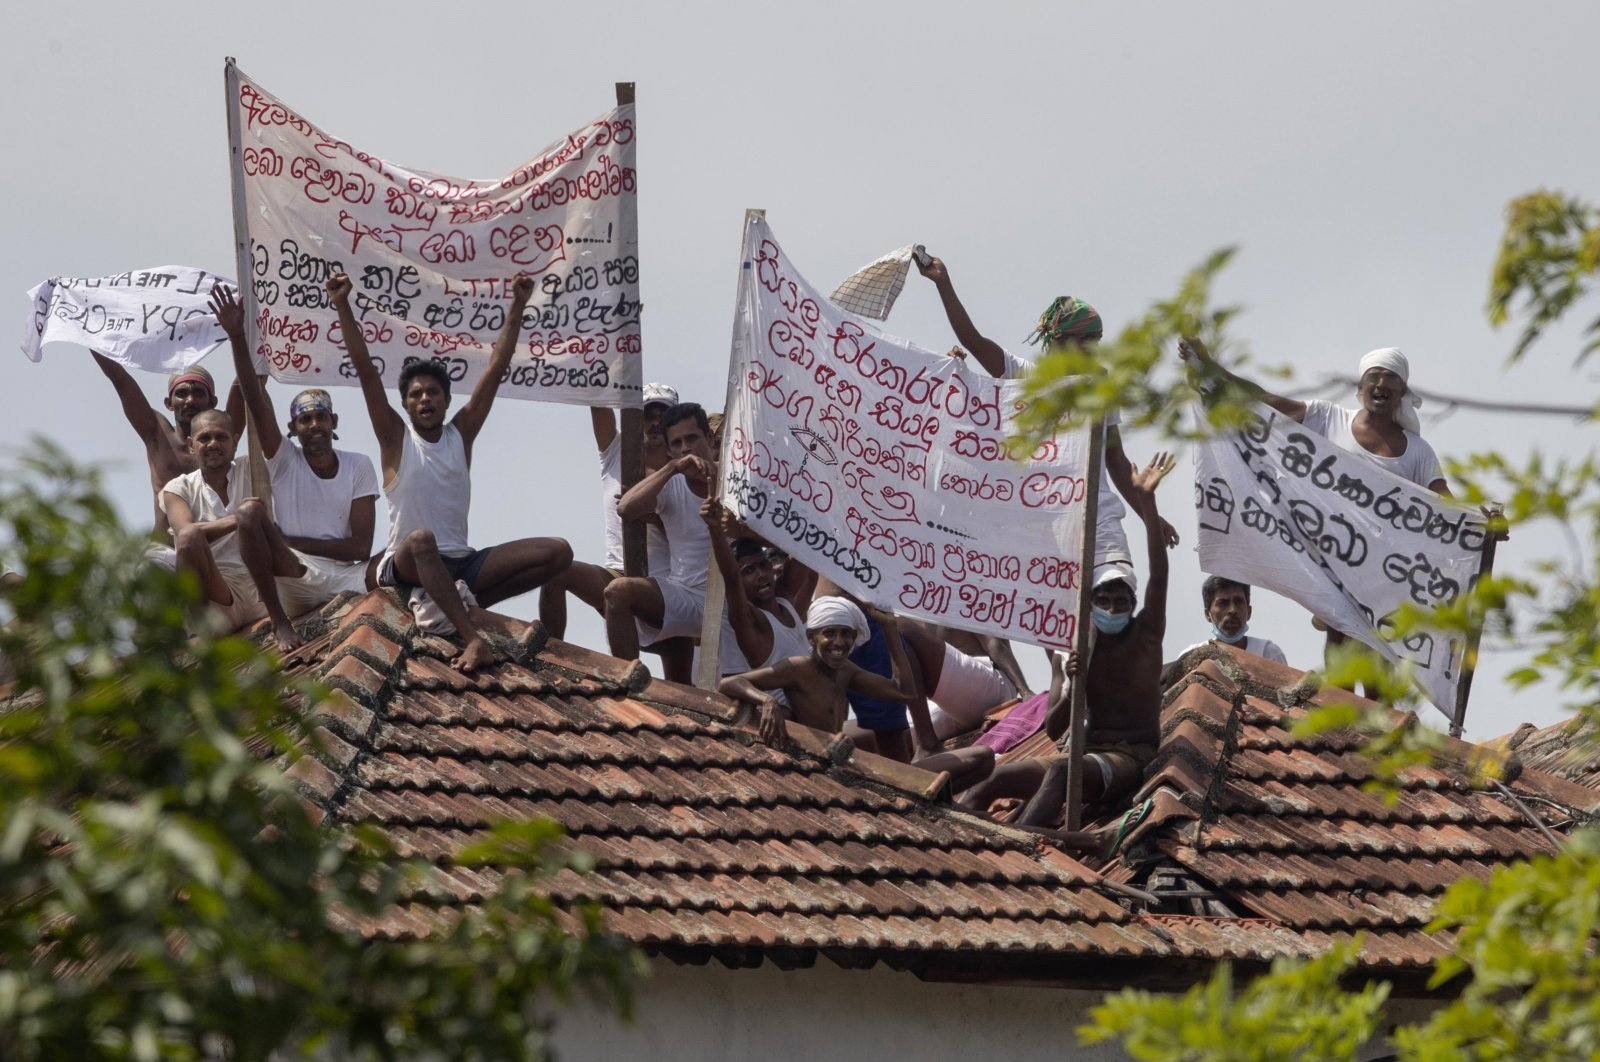 Death-row inmates of Sri Lanka's Welikada prison protest holding banners from the roof of the prison in Colombo, Sri Lanka, Friday, June 25, 2021. (AP Photo)